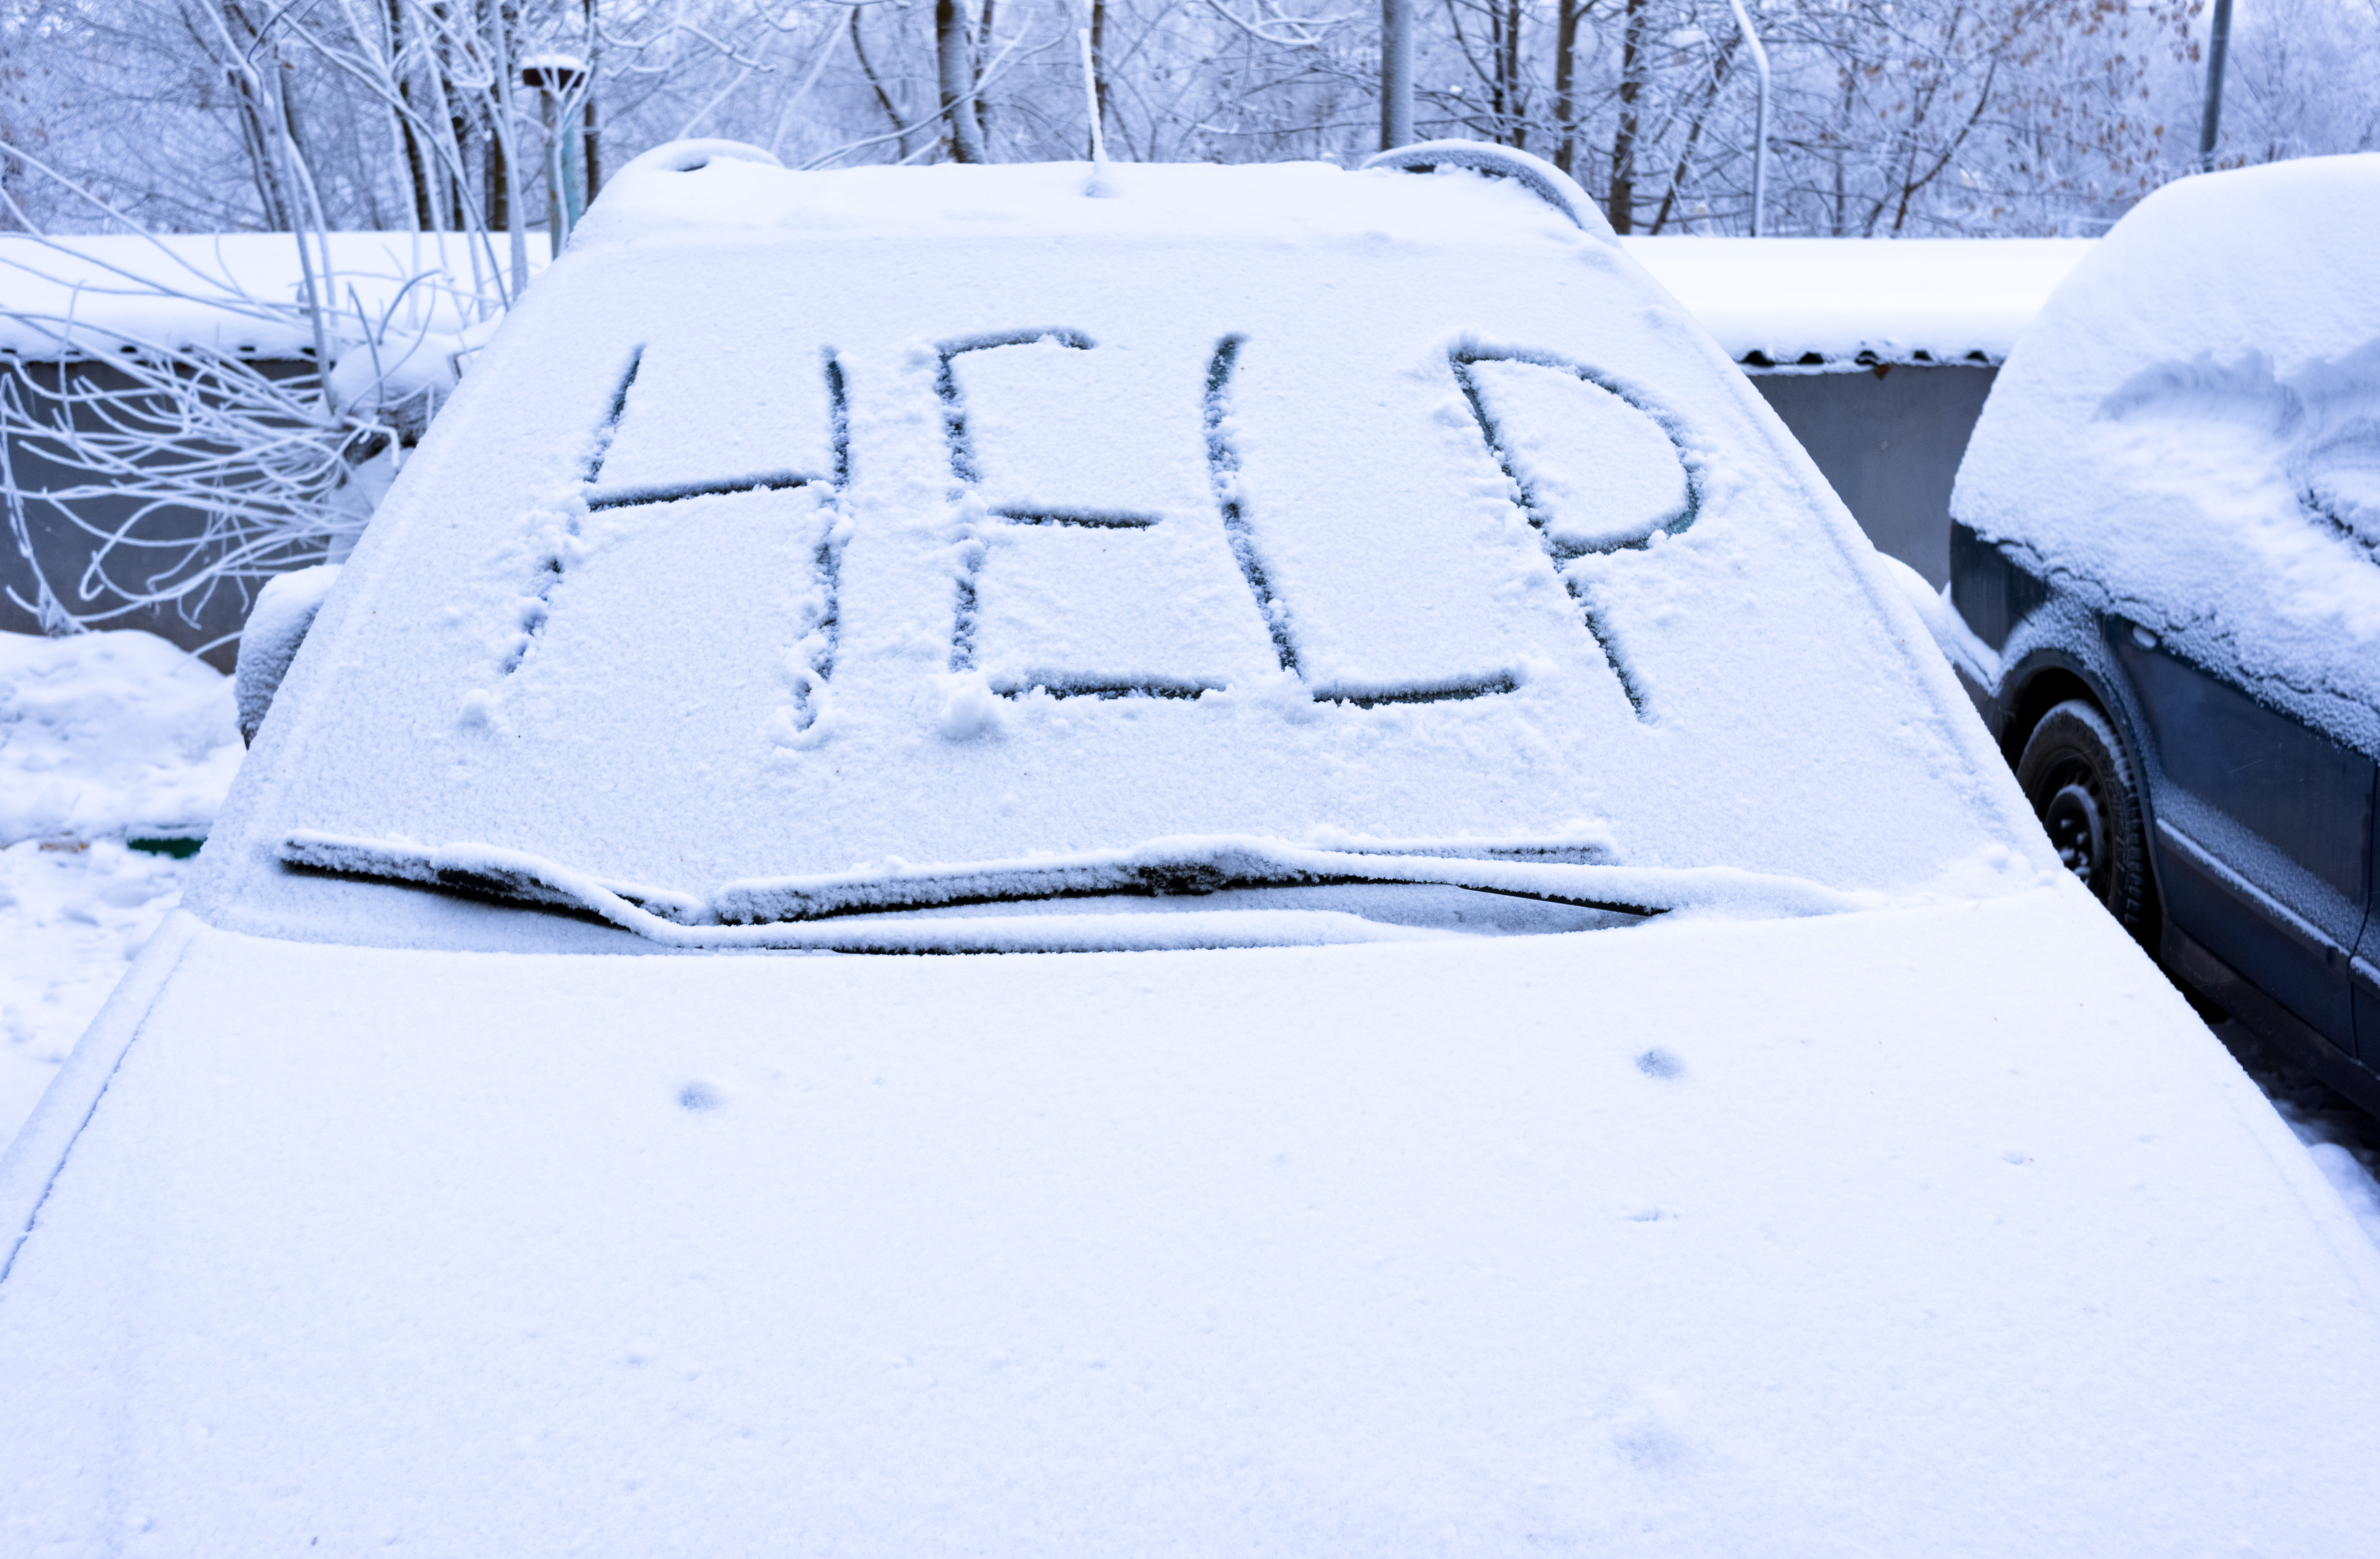 Word help on snow covered car